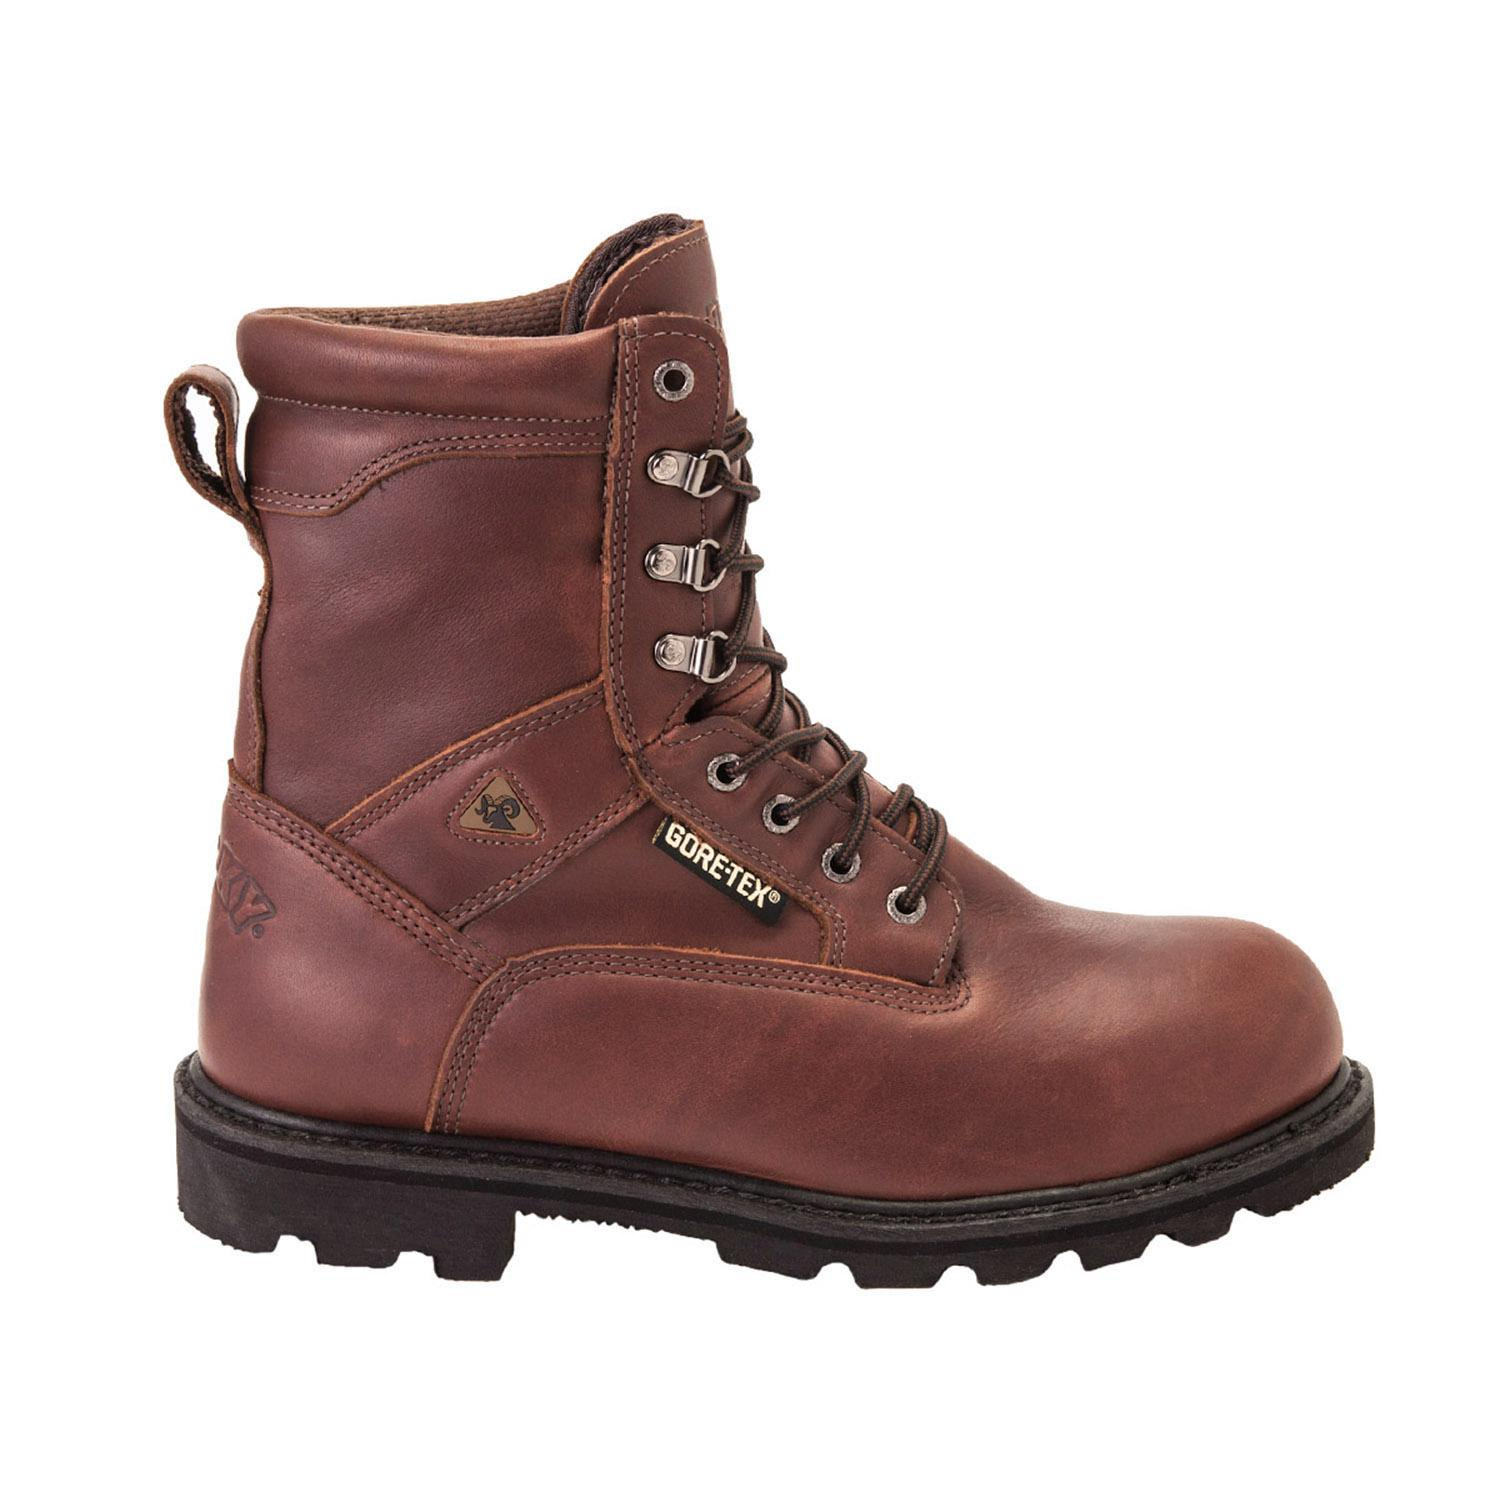 359c2d6ad2e Rocky Ranger Steel Toe GORE-TEX® Waterproof Work Boots